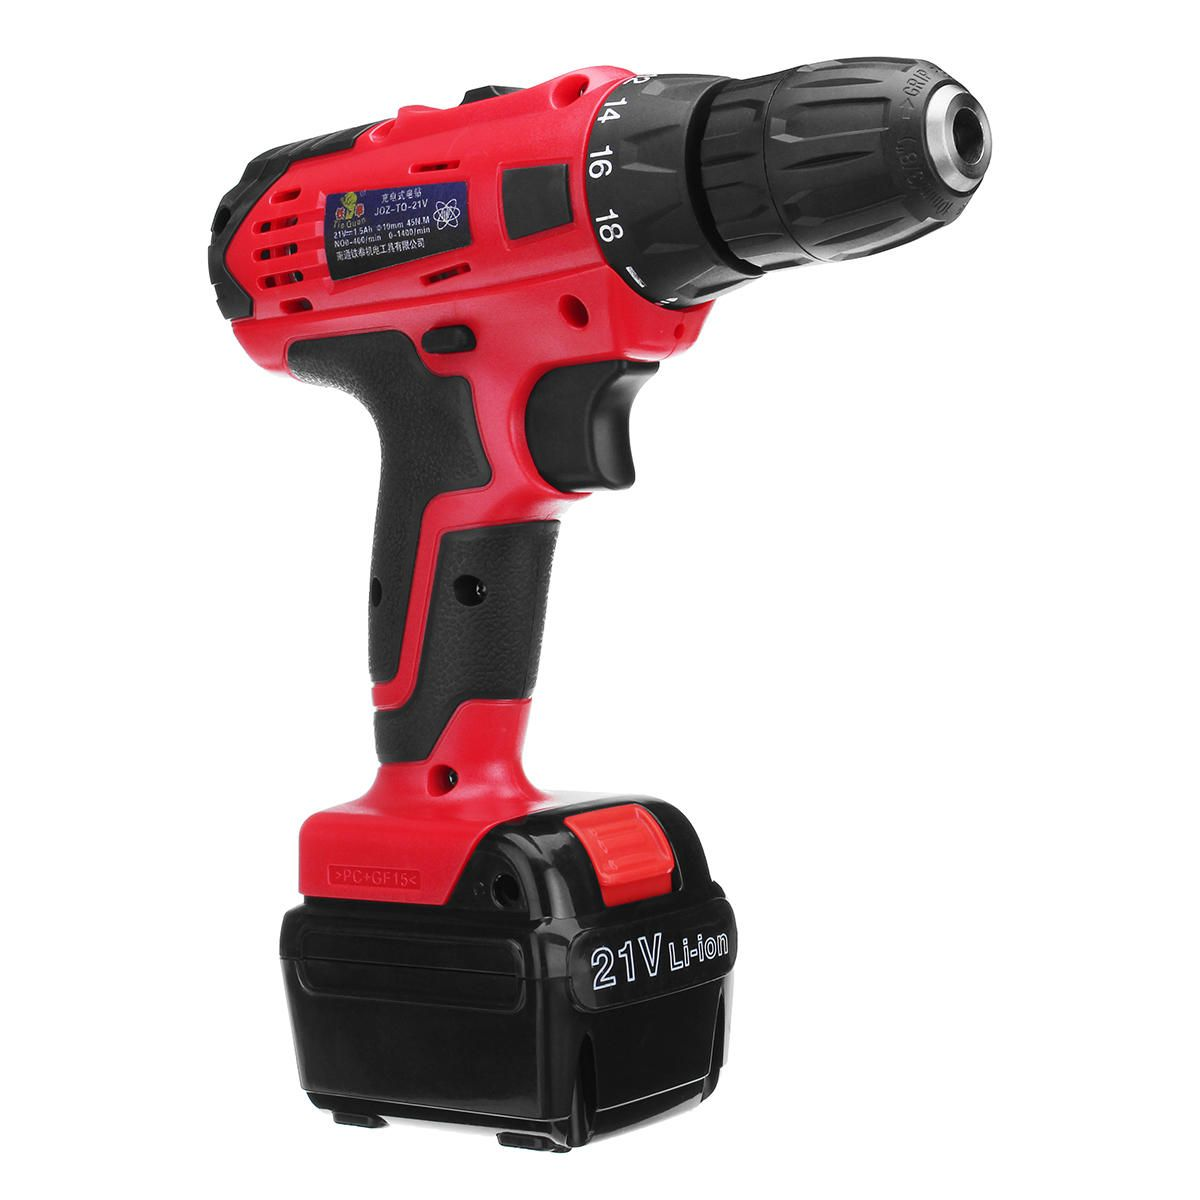 Us 59 99 20 21v Li Ion Cordless Electric Driver Drill 2 Speed Adjustable Power Screwdrivers With Led Light Power Tools From Tools Industrial Scientific On B